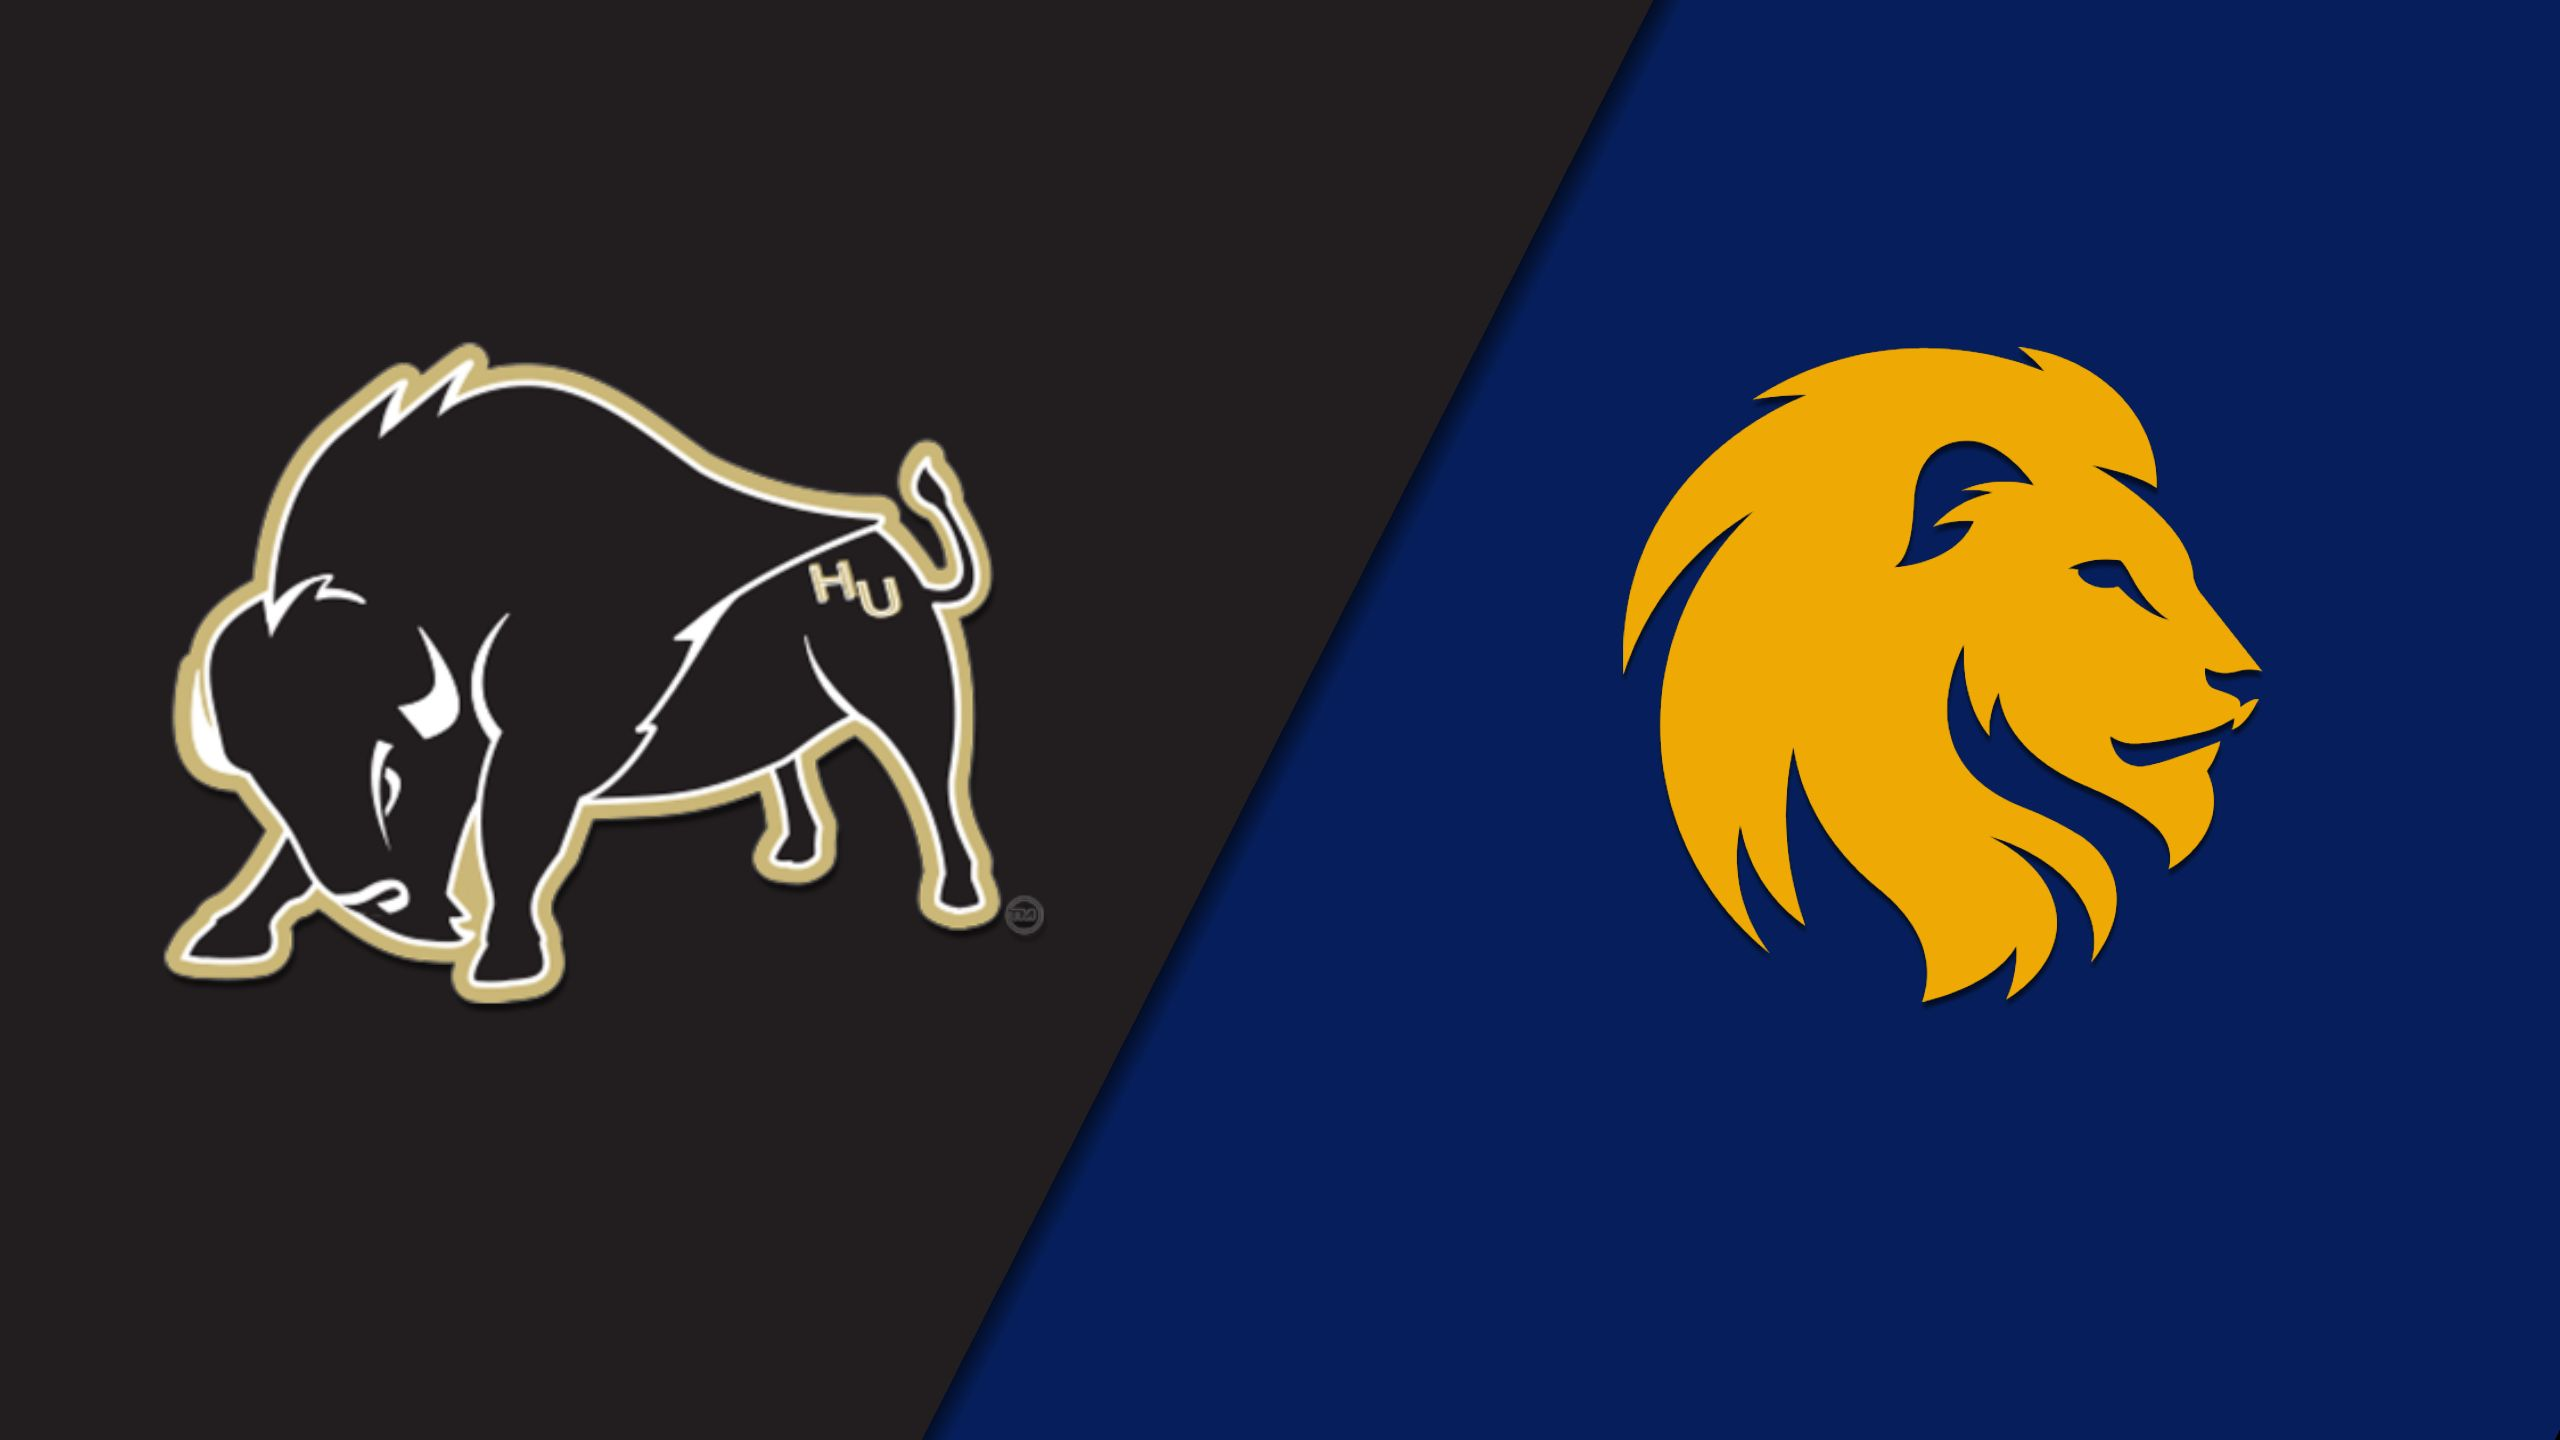 Harding vs. Texas A&M Commerce (Semifinal #2) (NCAA Division II Football Championship)